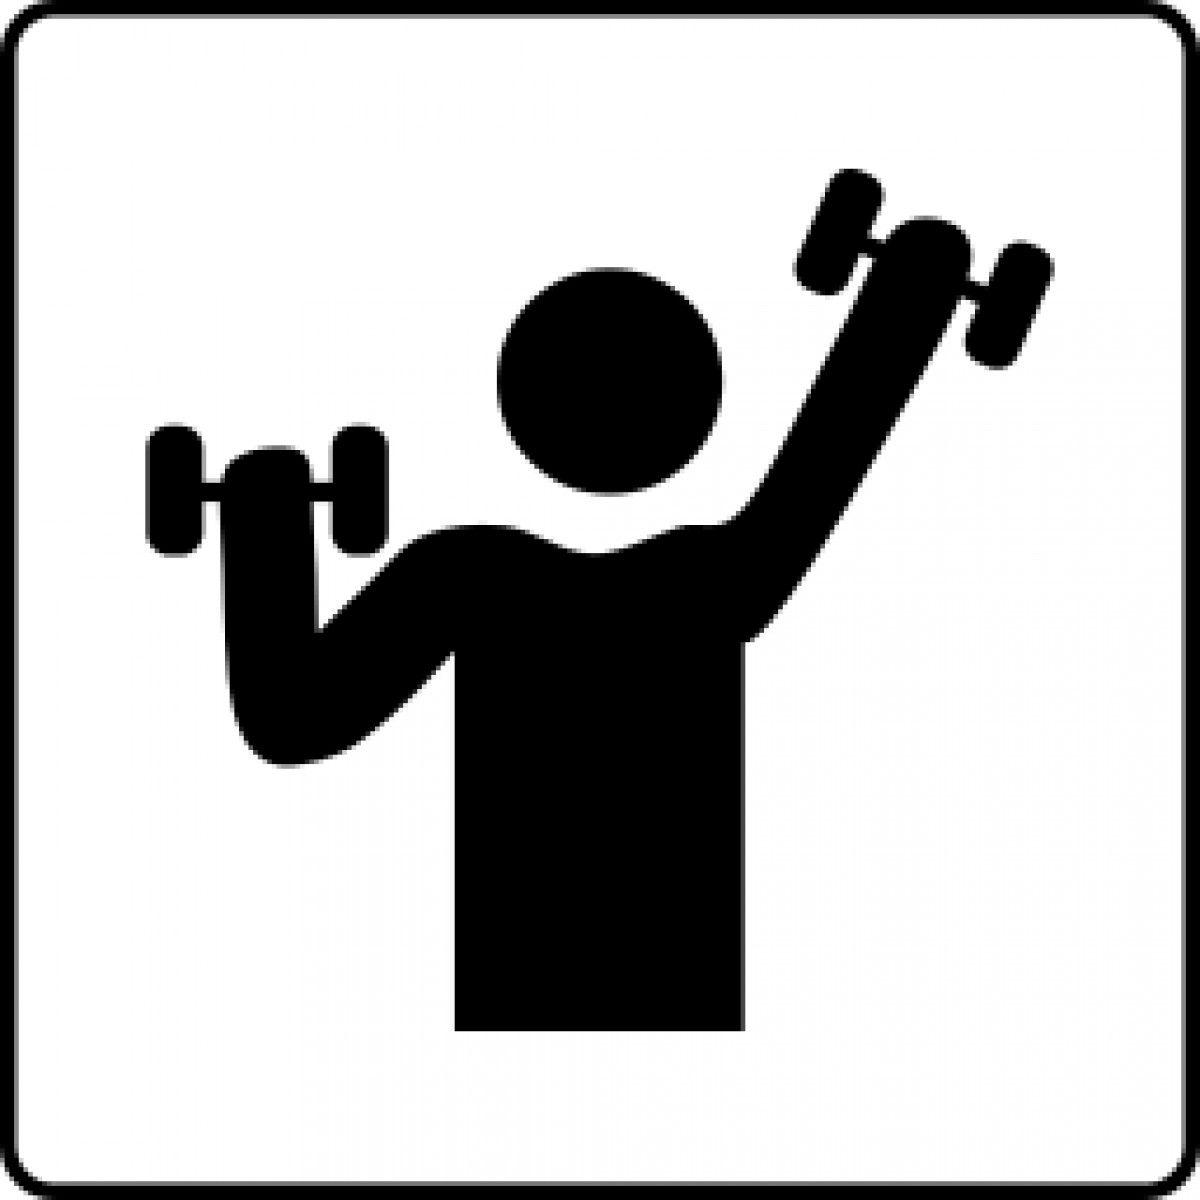 Male trainer is required for a gym in FITNESS on Bahrain.